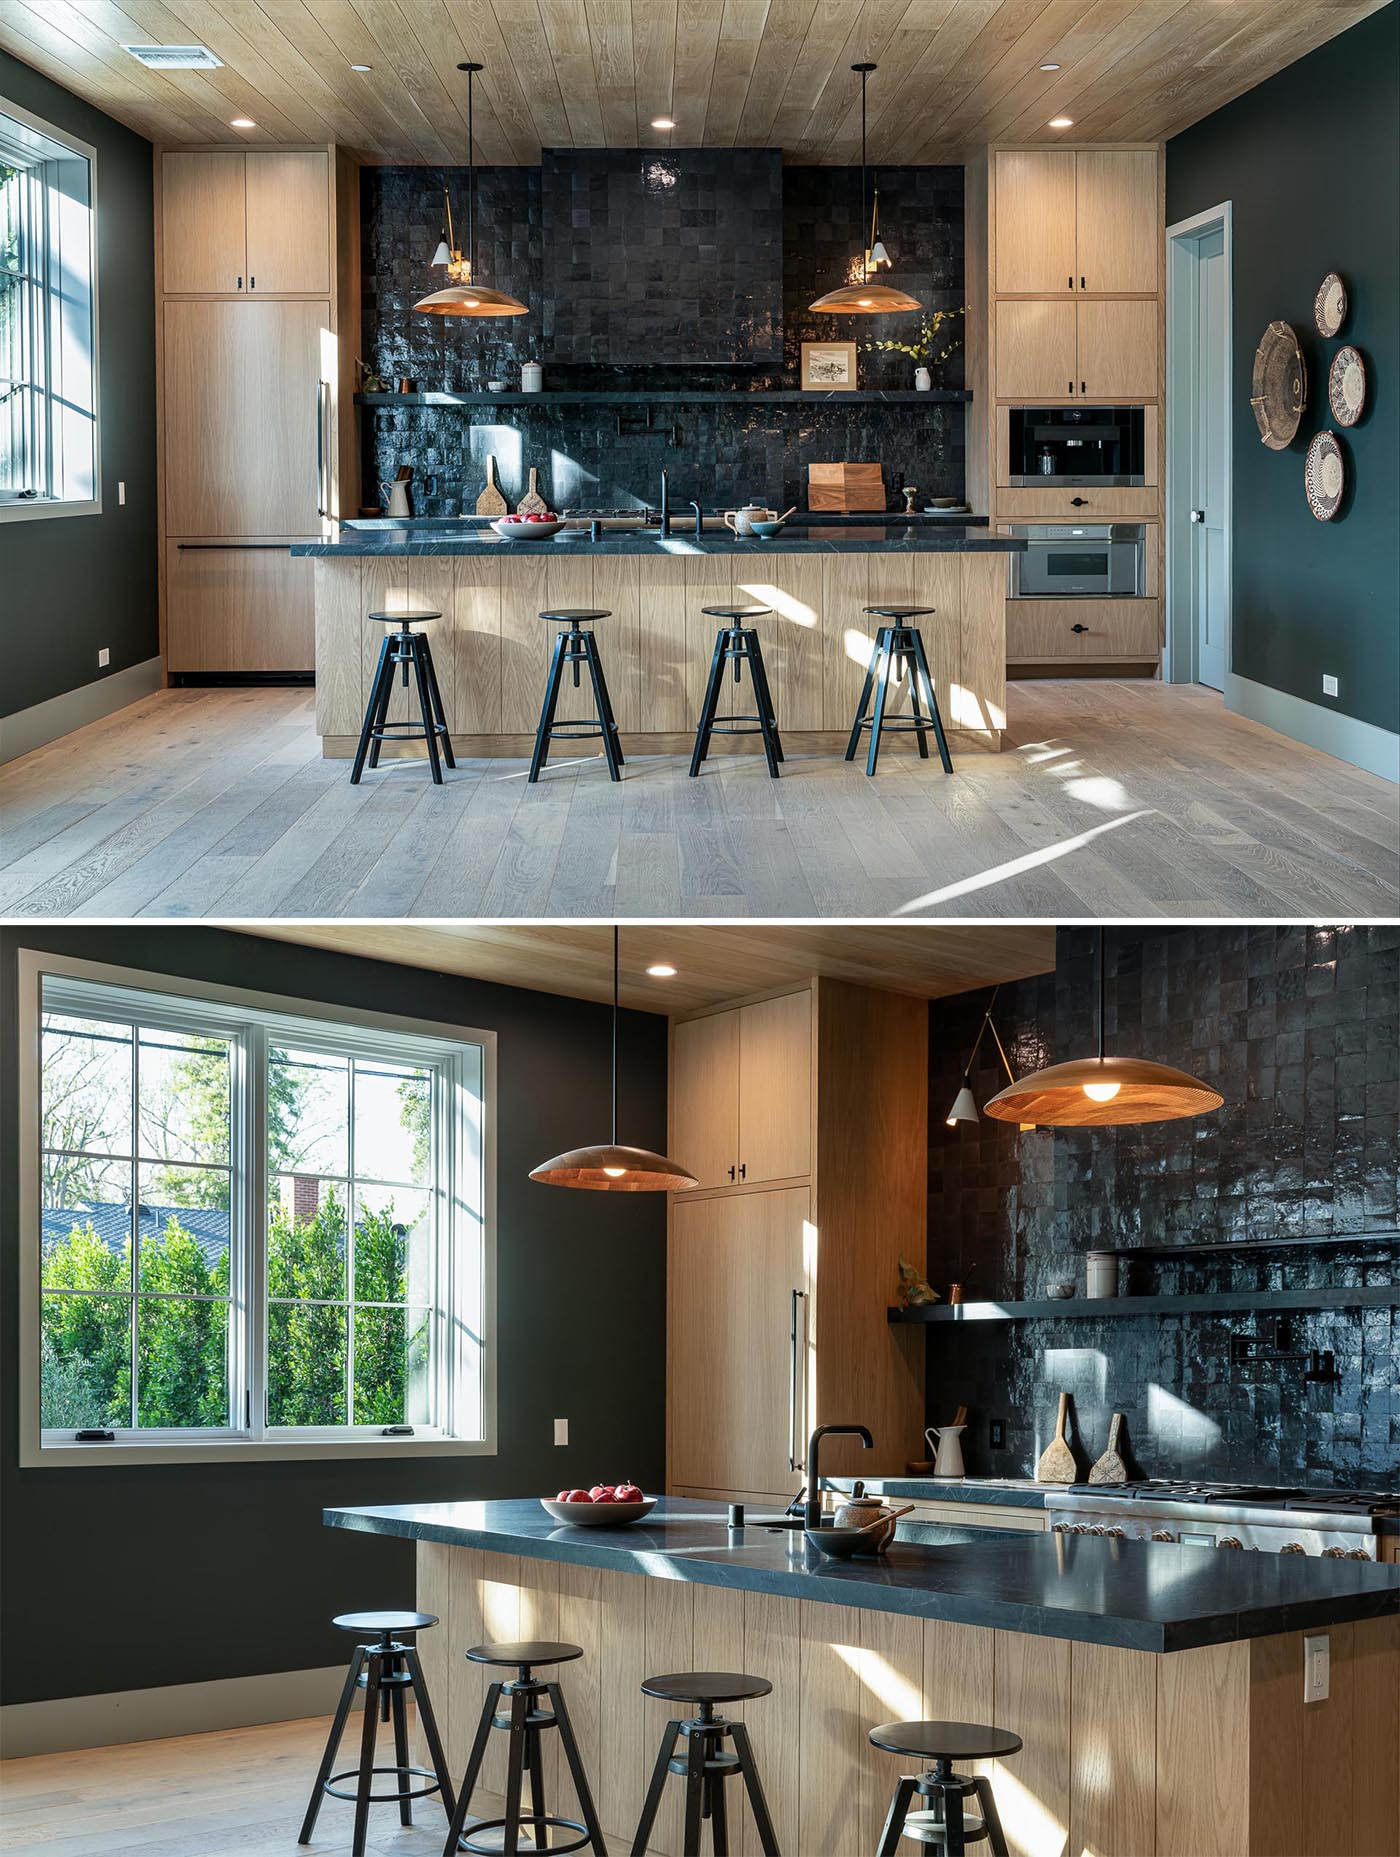 This modern kitchen showcases a Zellige black tile accent wall, rift white oak cabinets, and dark honed soapstone countertops.